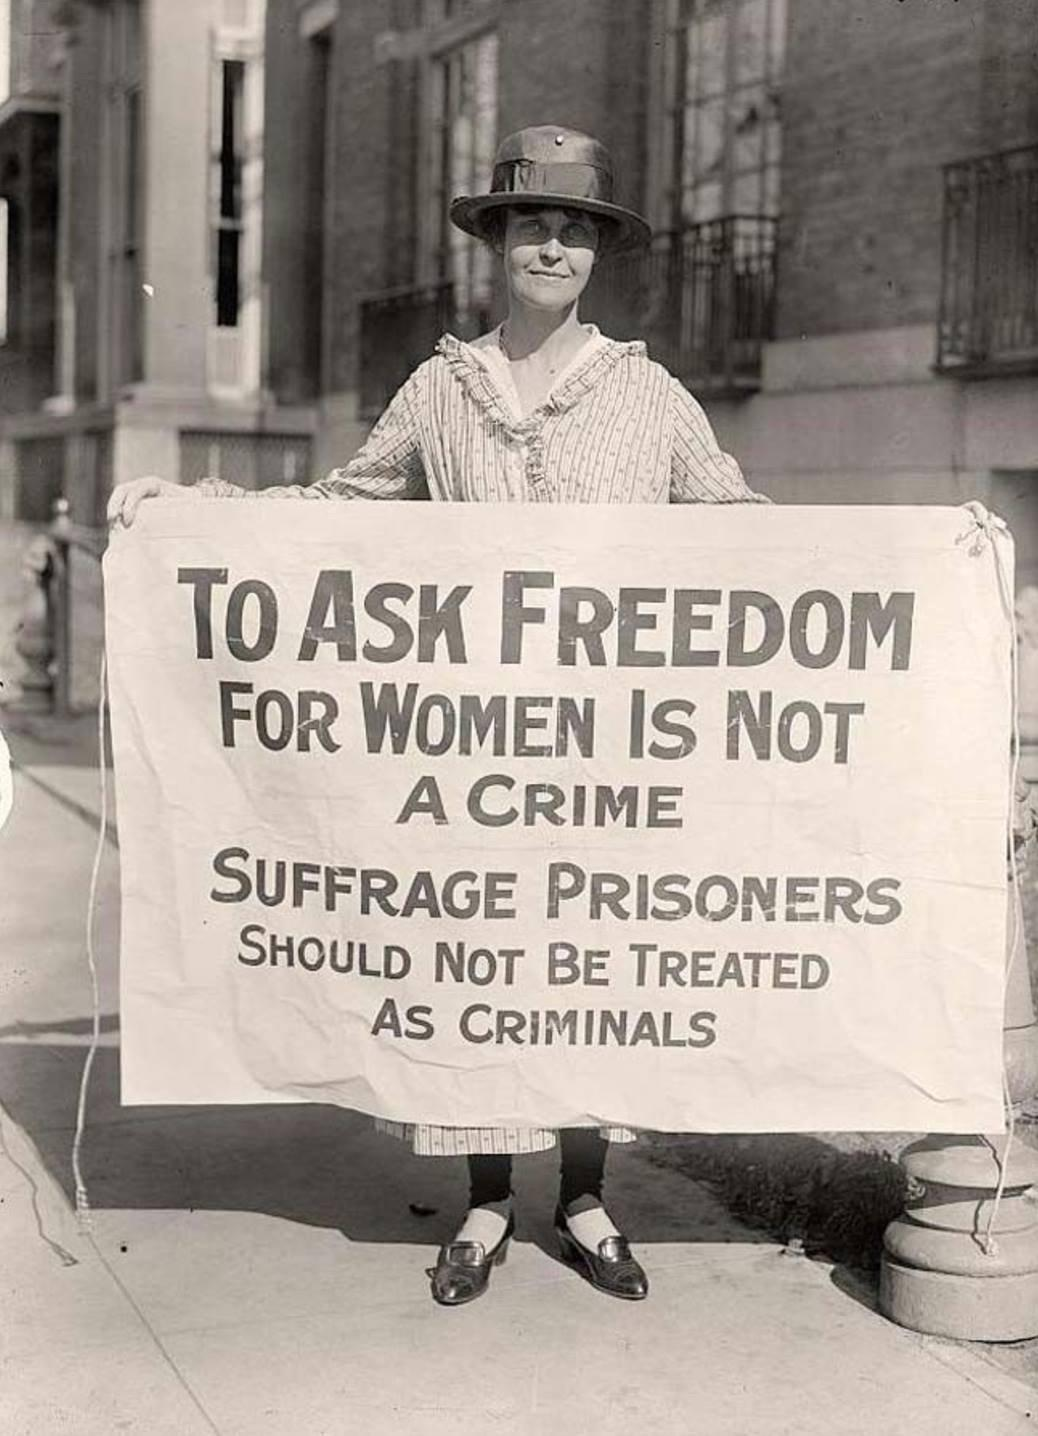 Mary Winsor (Pennsylvania), holding suffrage prisoners banner